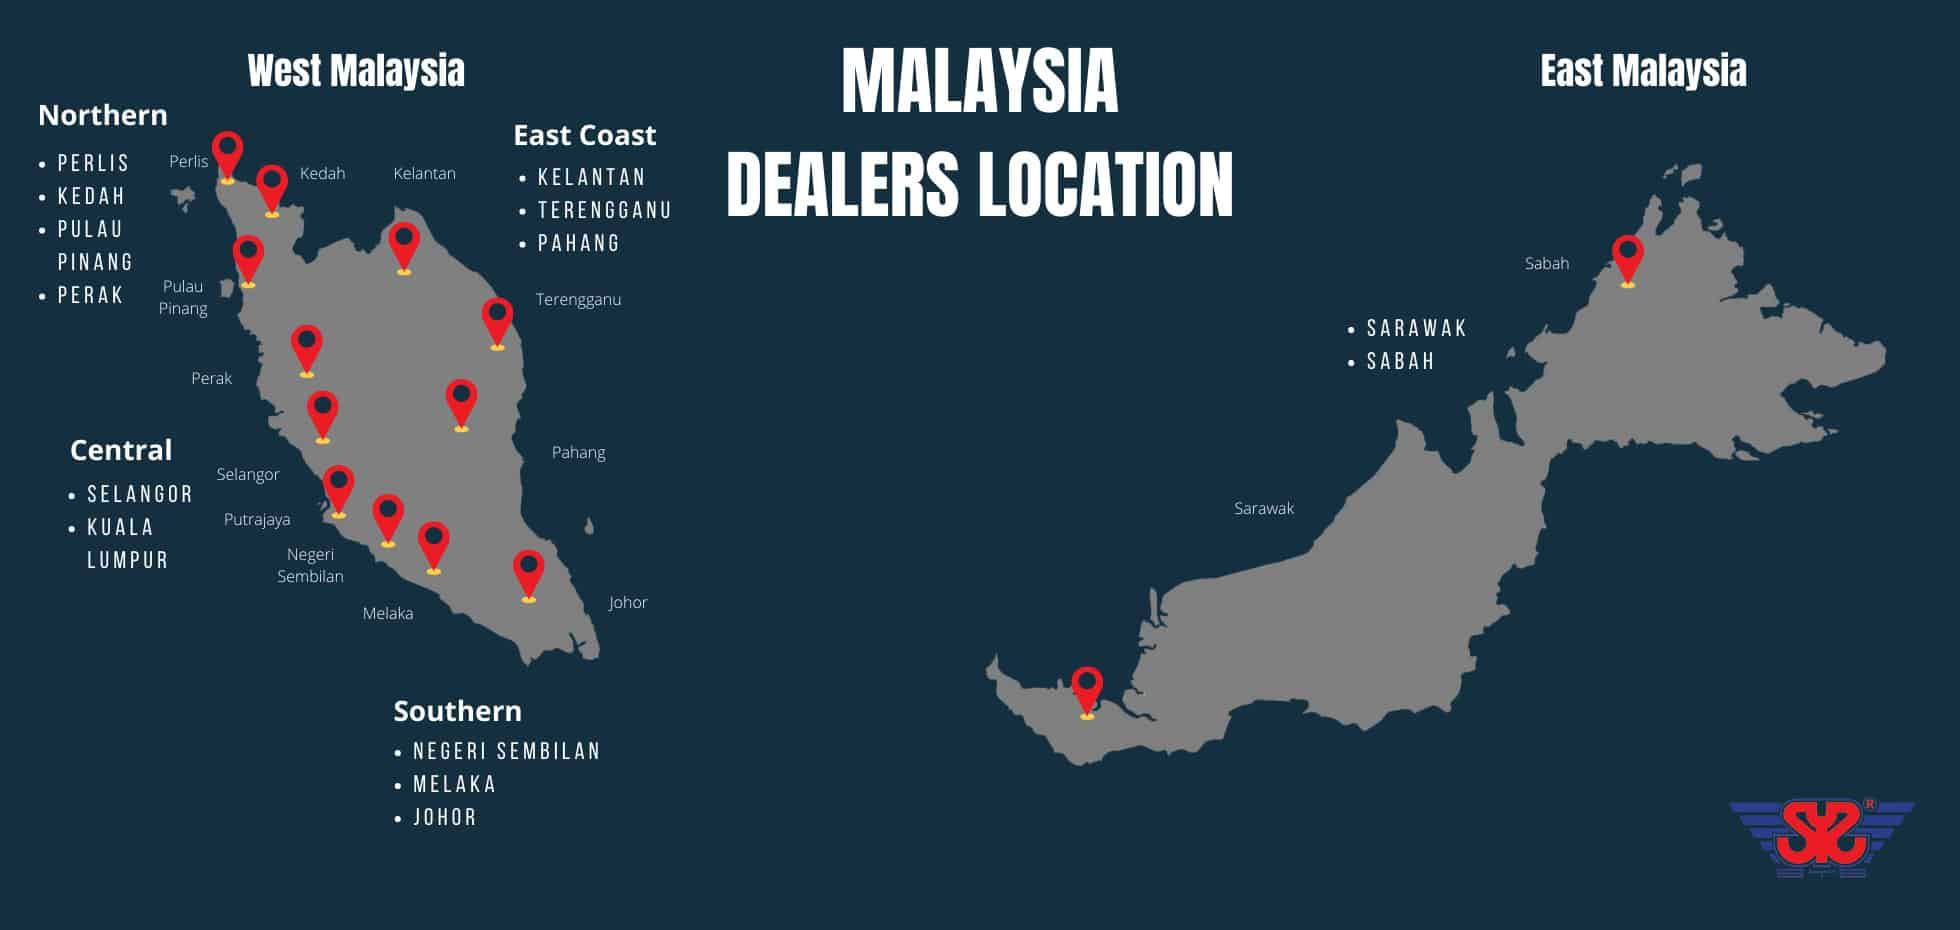 Malaysia dealers location map for syscast